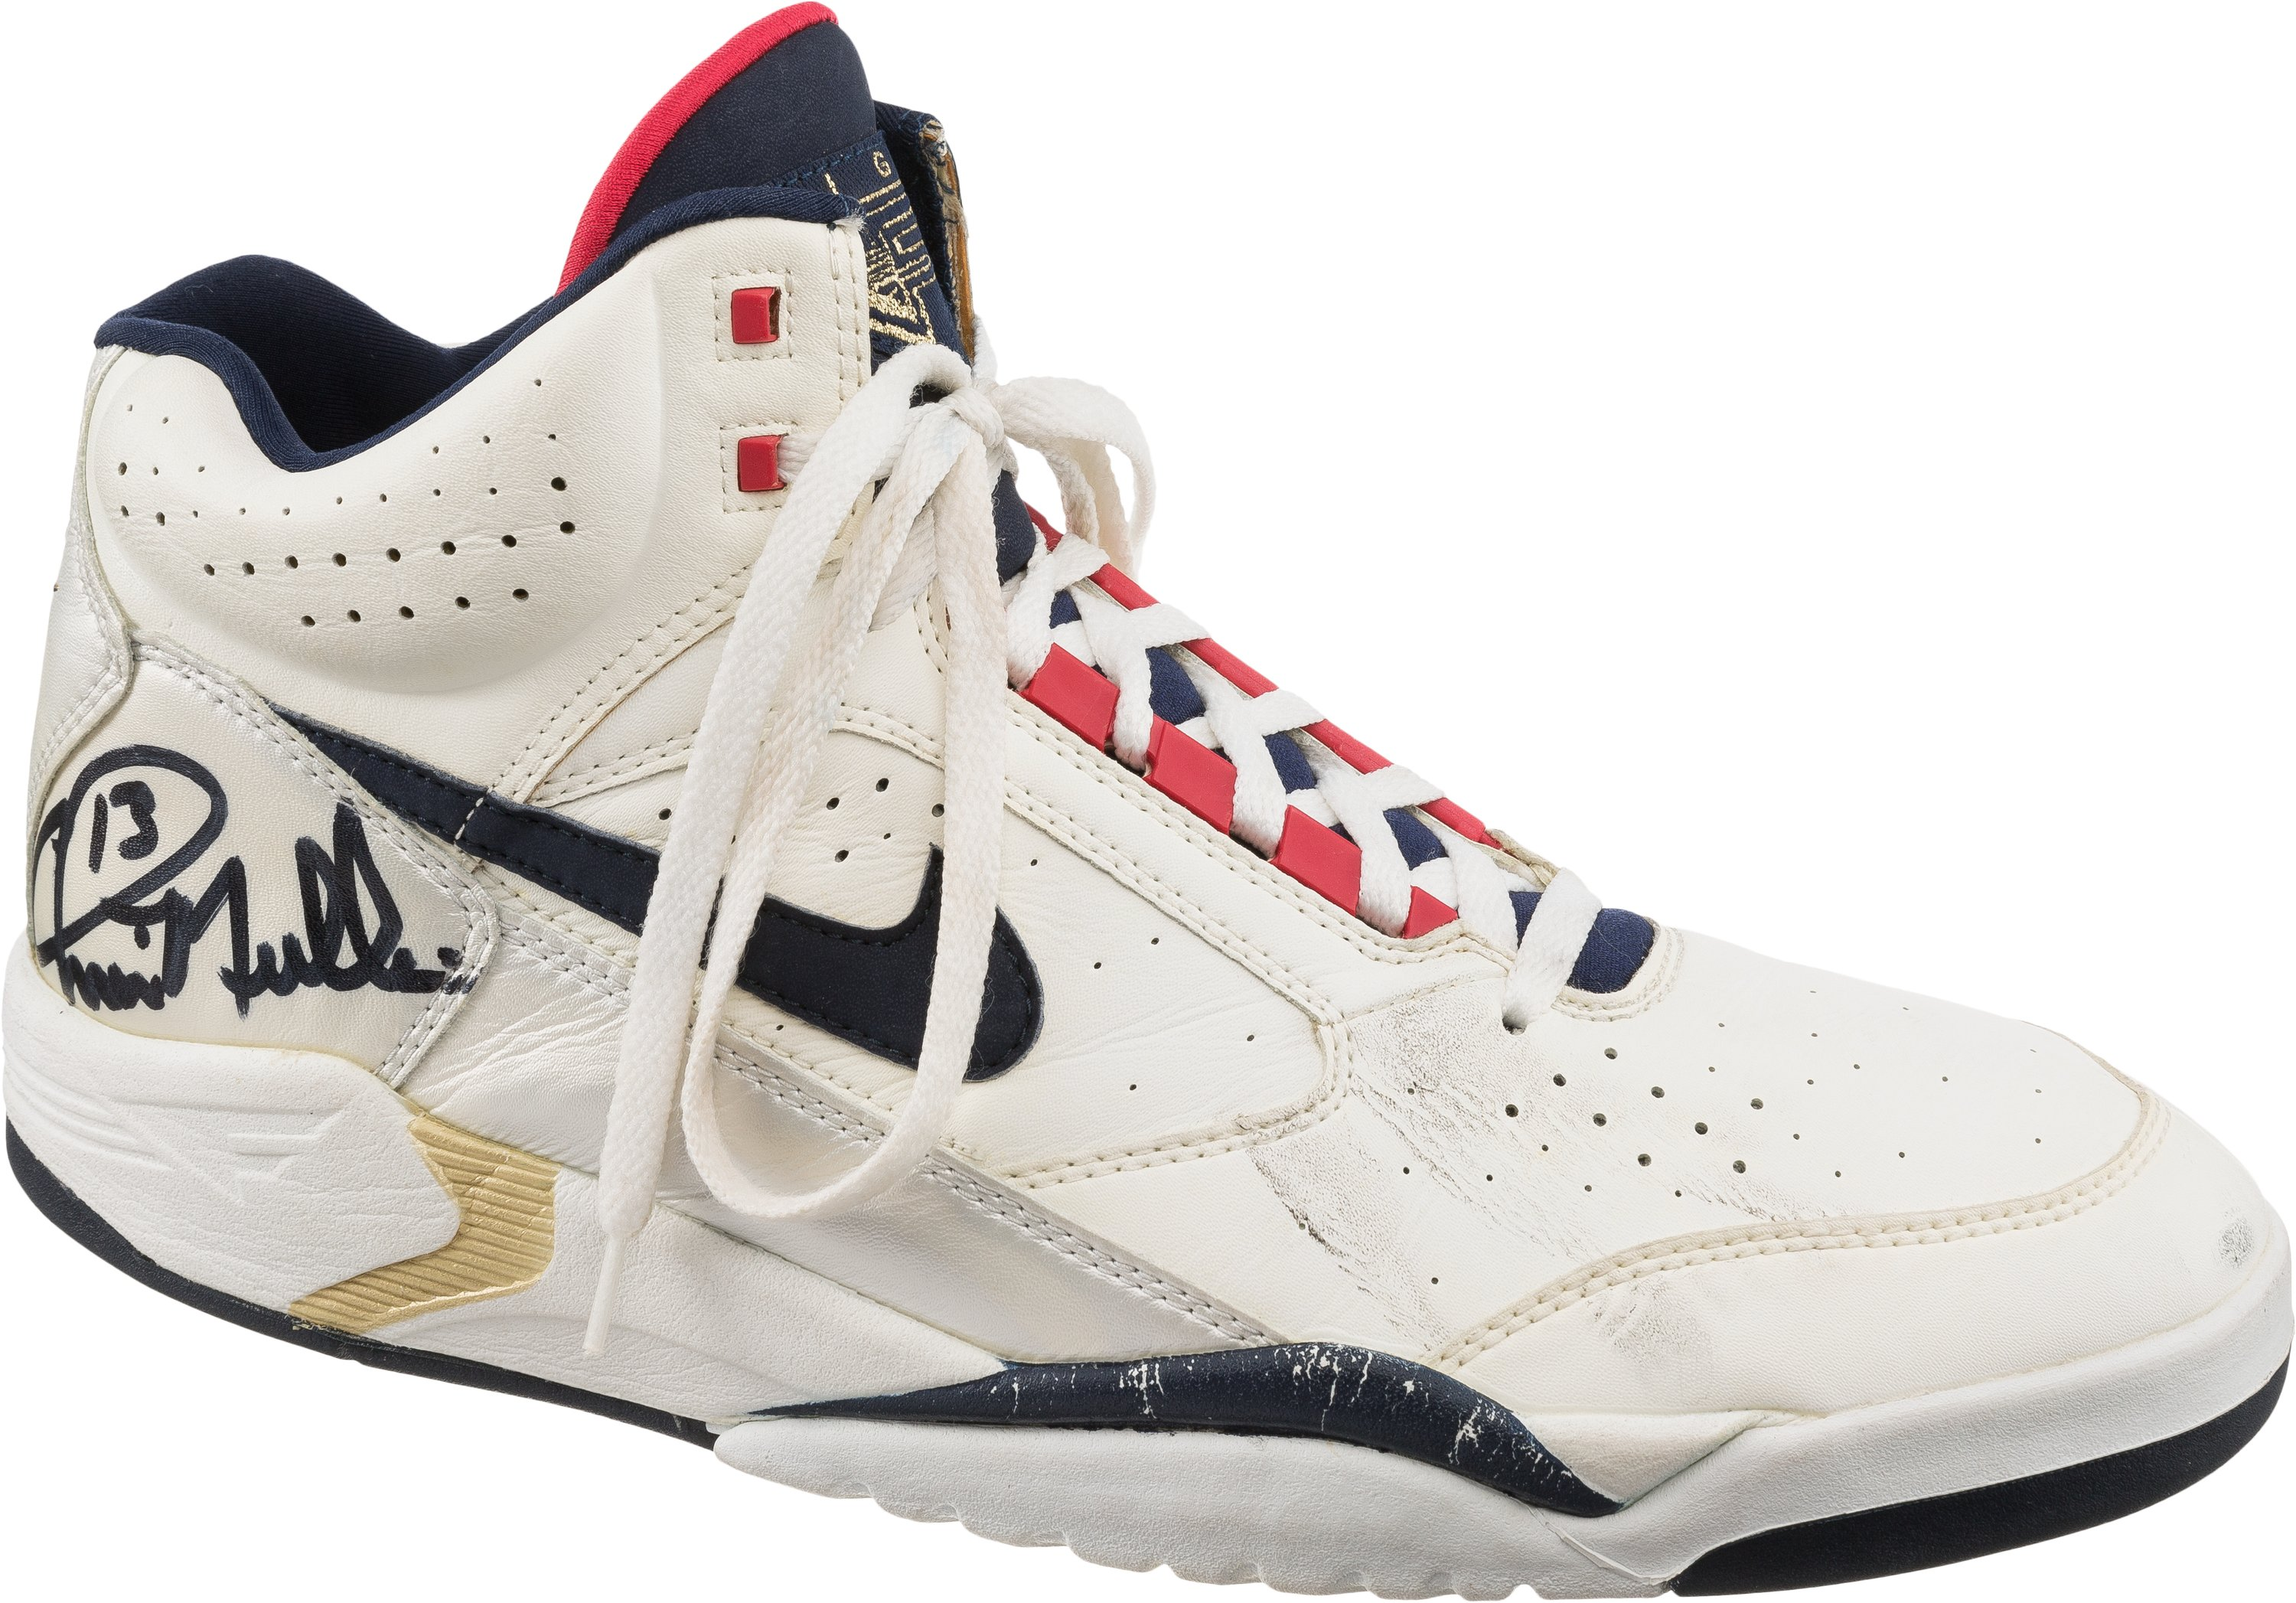 b0f0f6805f0 1992 Olympic Games Chris Mullin Game Worn & Signed Dream Team   Lot #82335    Heritage Auctions